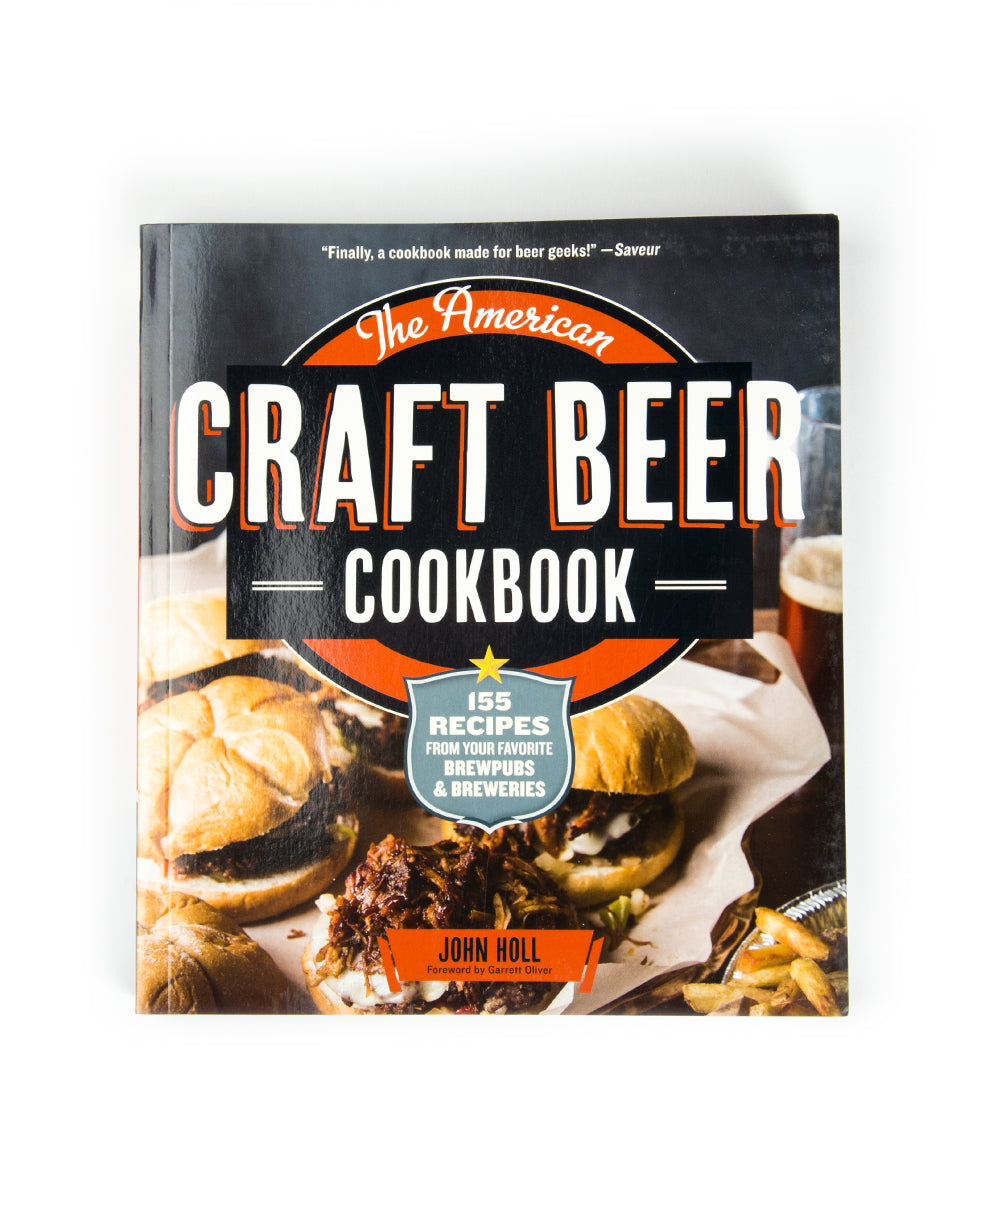 THE AMERI CRAFT BEER COOKBOOK